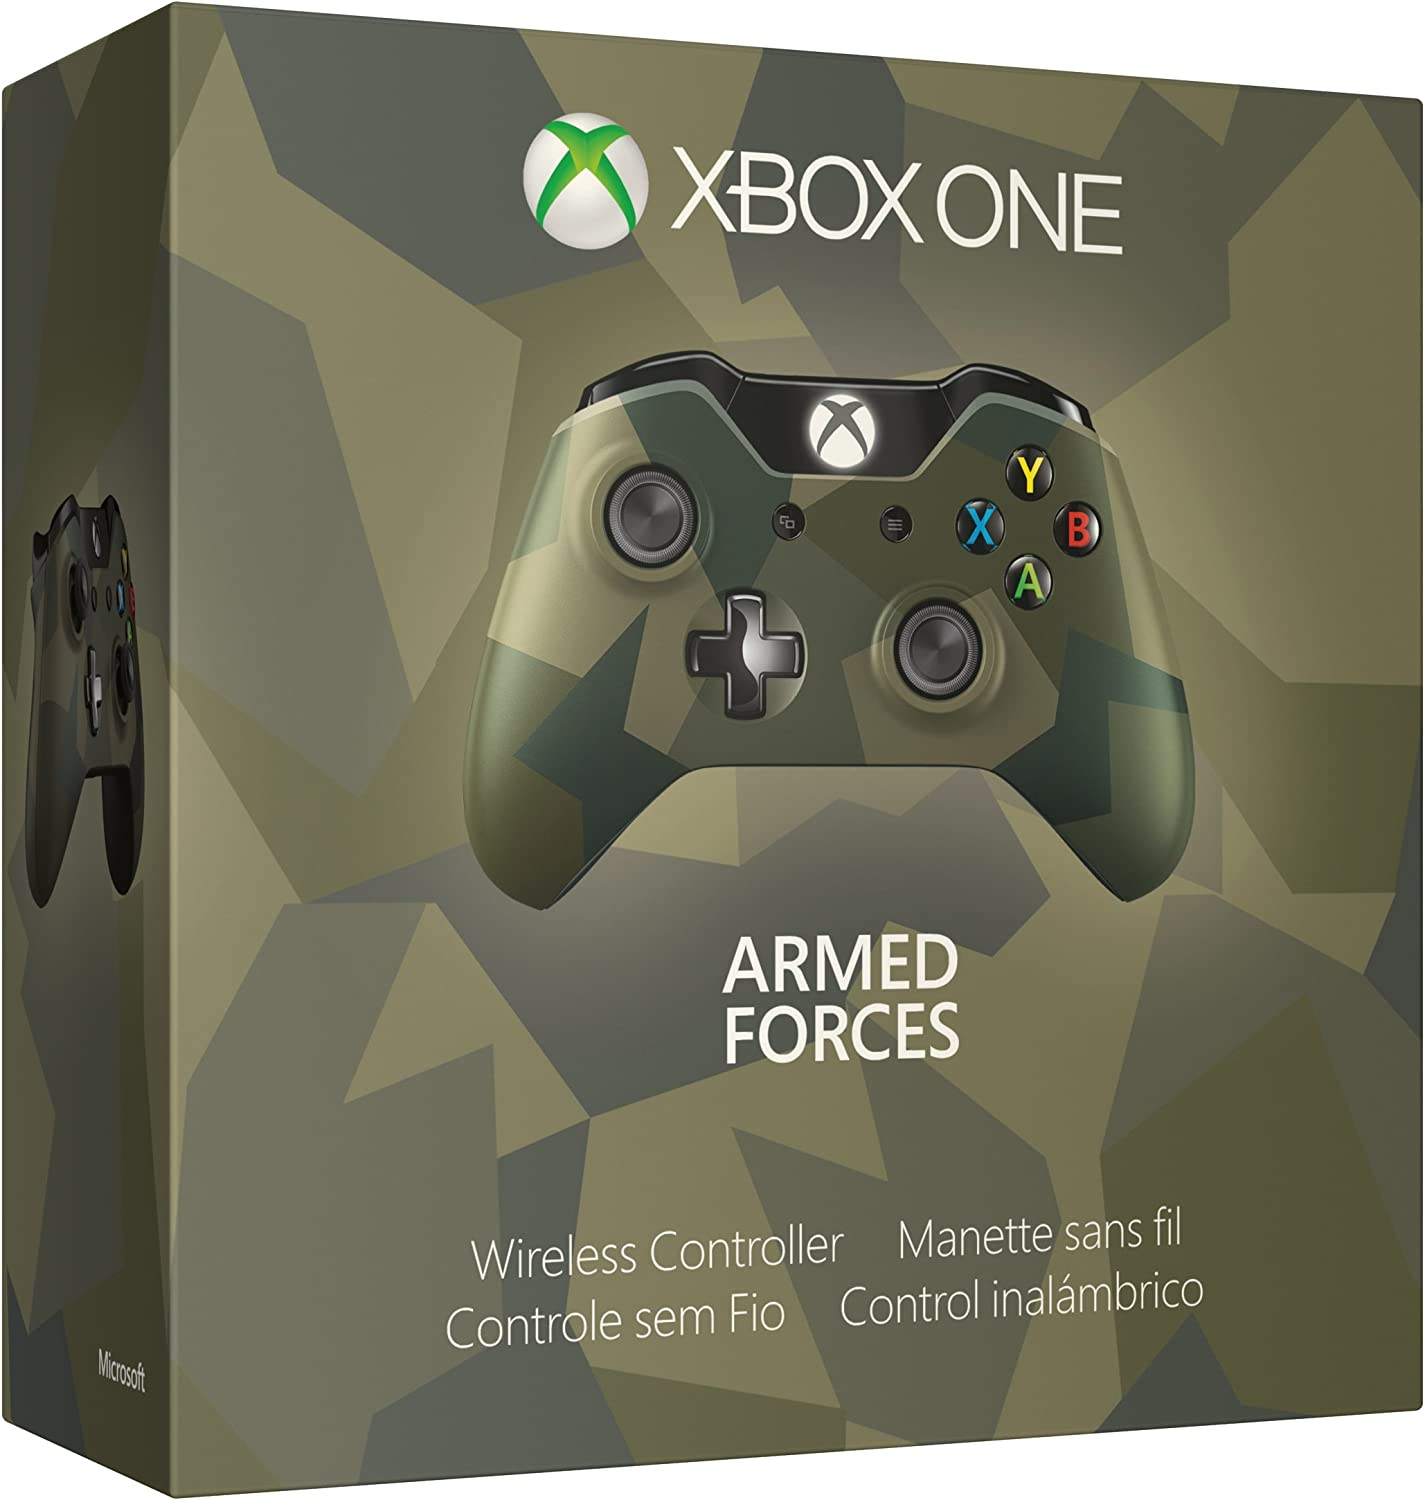 Xbox One Wireless Controller Without 35 Millimeter Once Attached They Look Part Of The And Not An Headset Jack Video Games